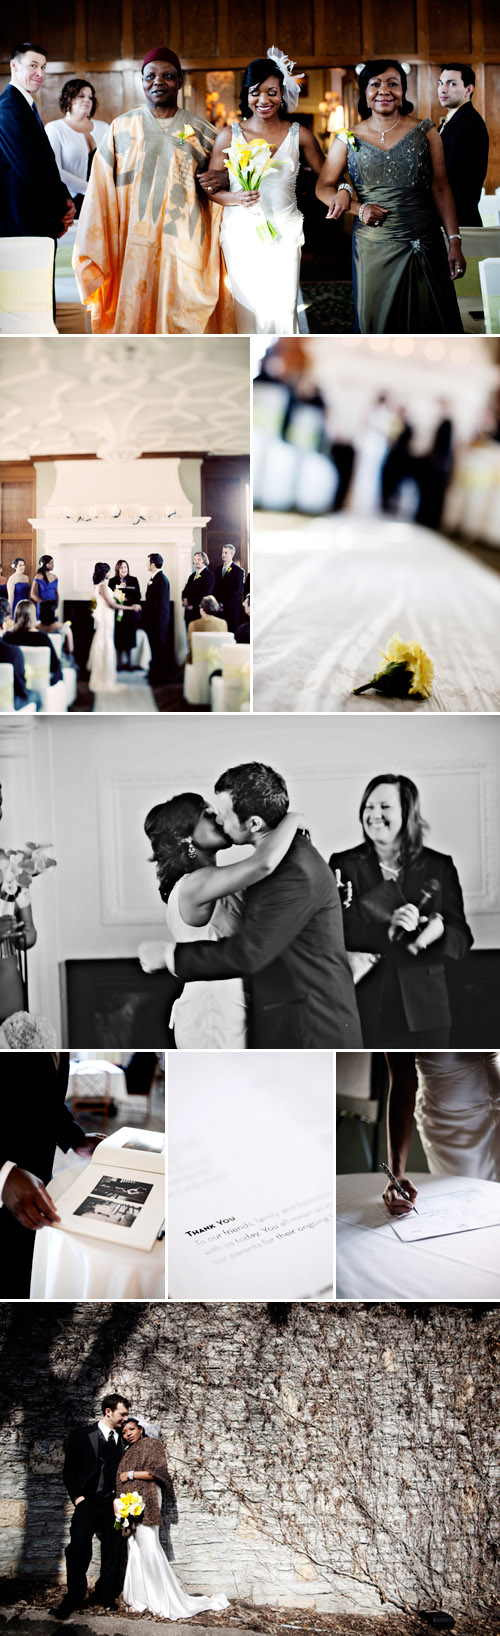 Interracial Wedding Beautiful | REAL Wedding: Cobalt, Chartreuse, Yellow & White - Project Wedding ...